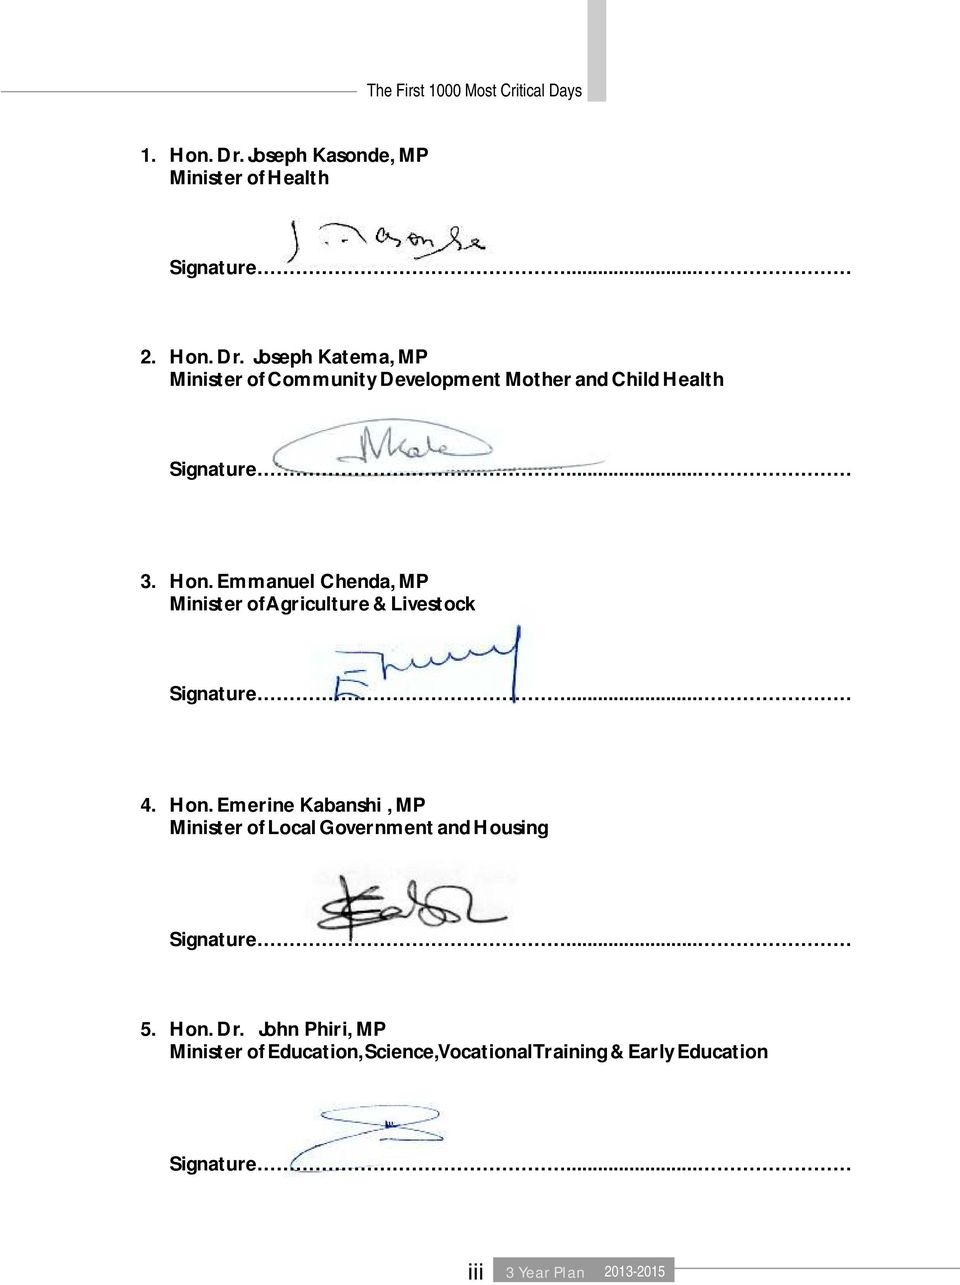 .. 5. Hon. Dr. John Phiri, MP Minister of Education, Science, Vocational Training & Early Education Signature.